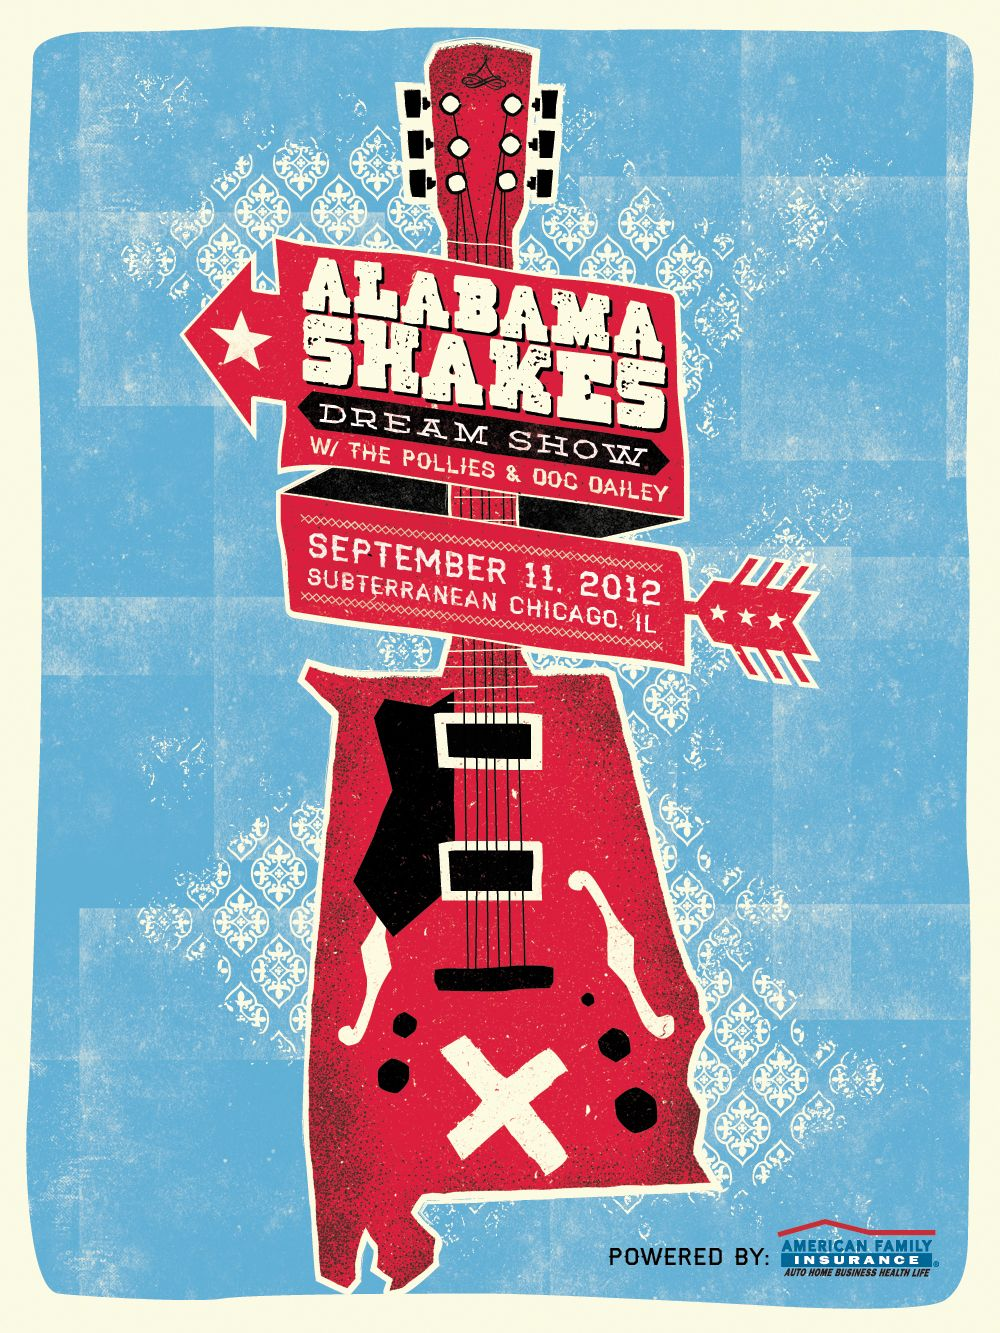 Alabama Shakes Poster Sxsw Poster Vintage Music Posters Gig Posters